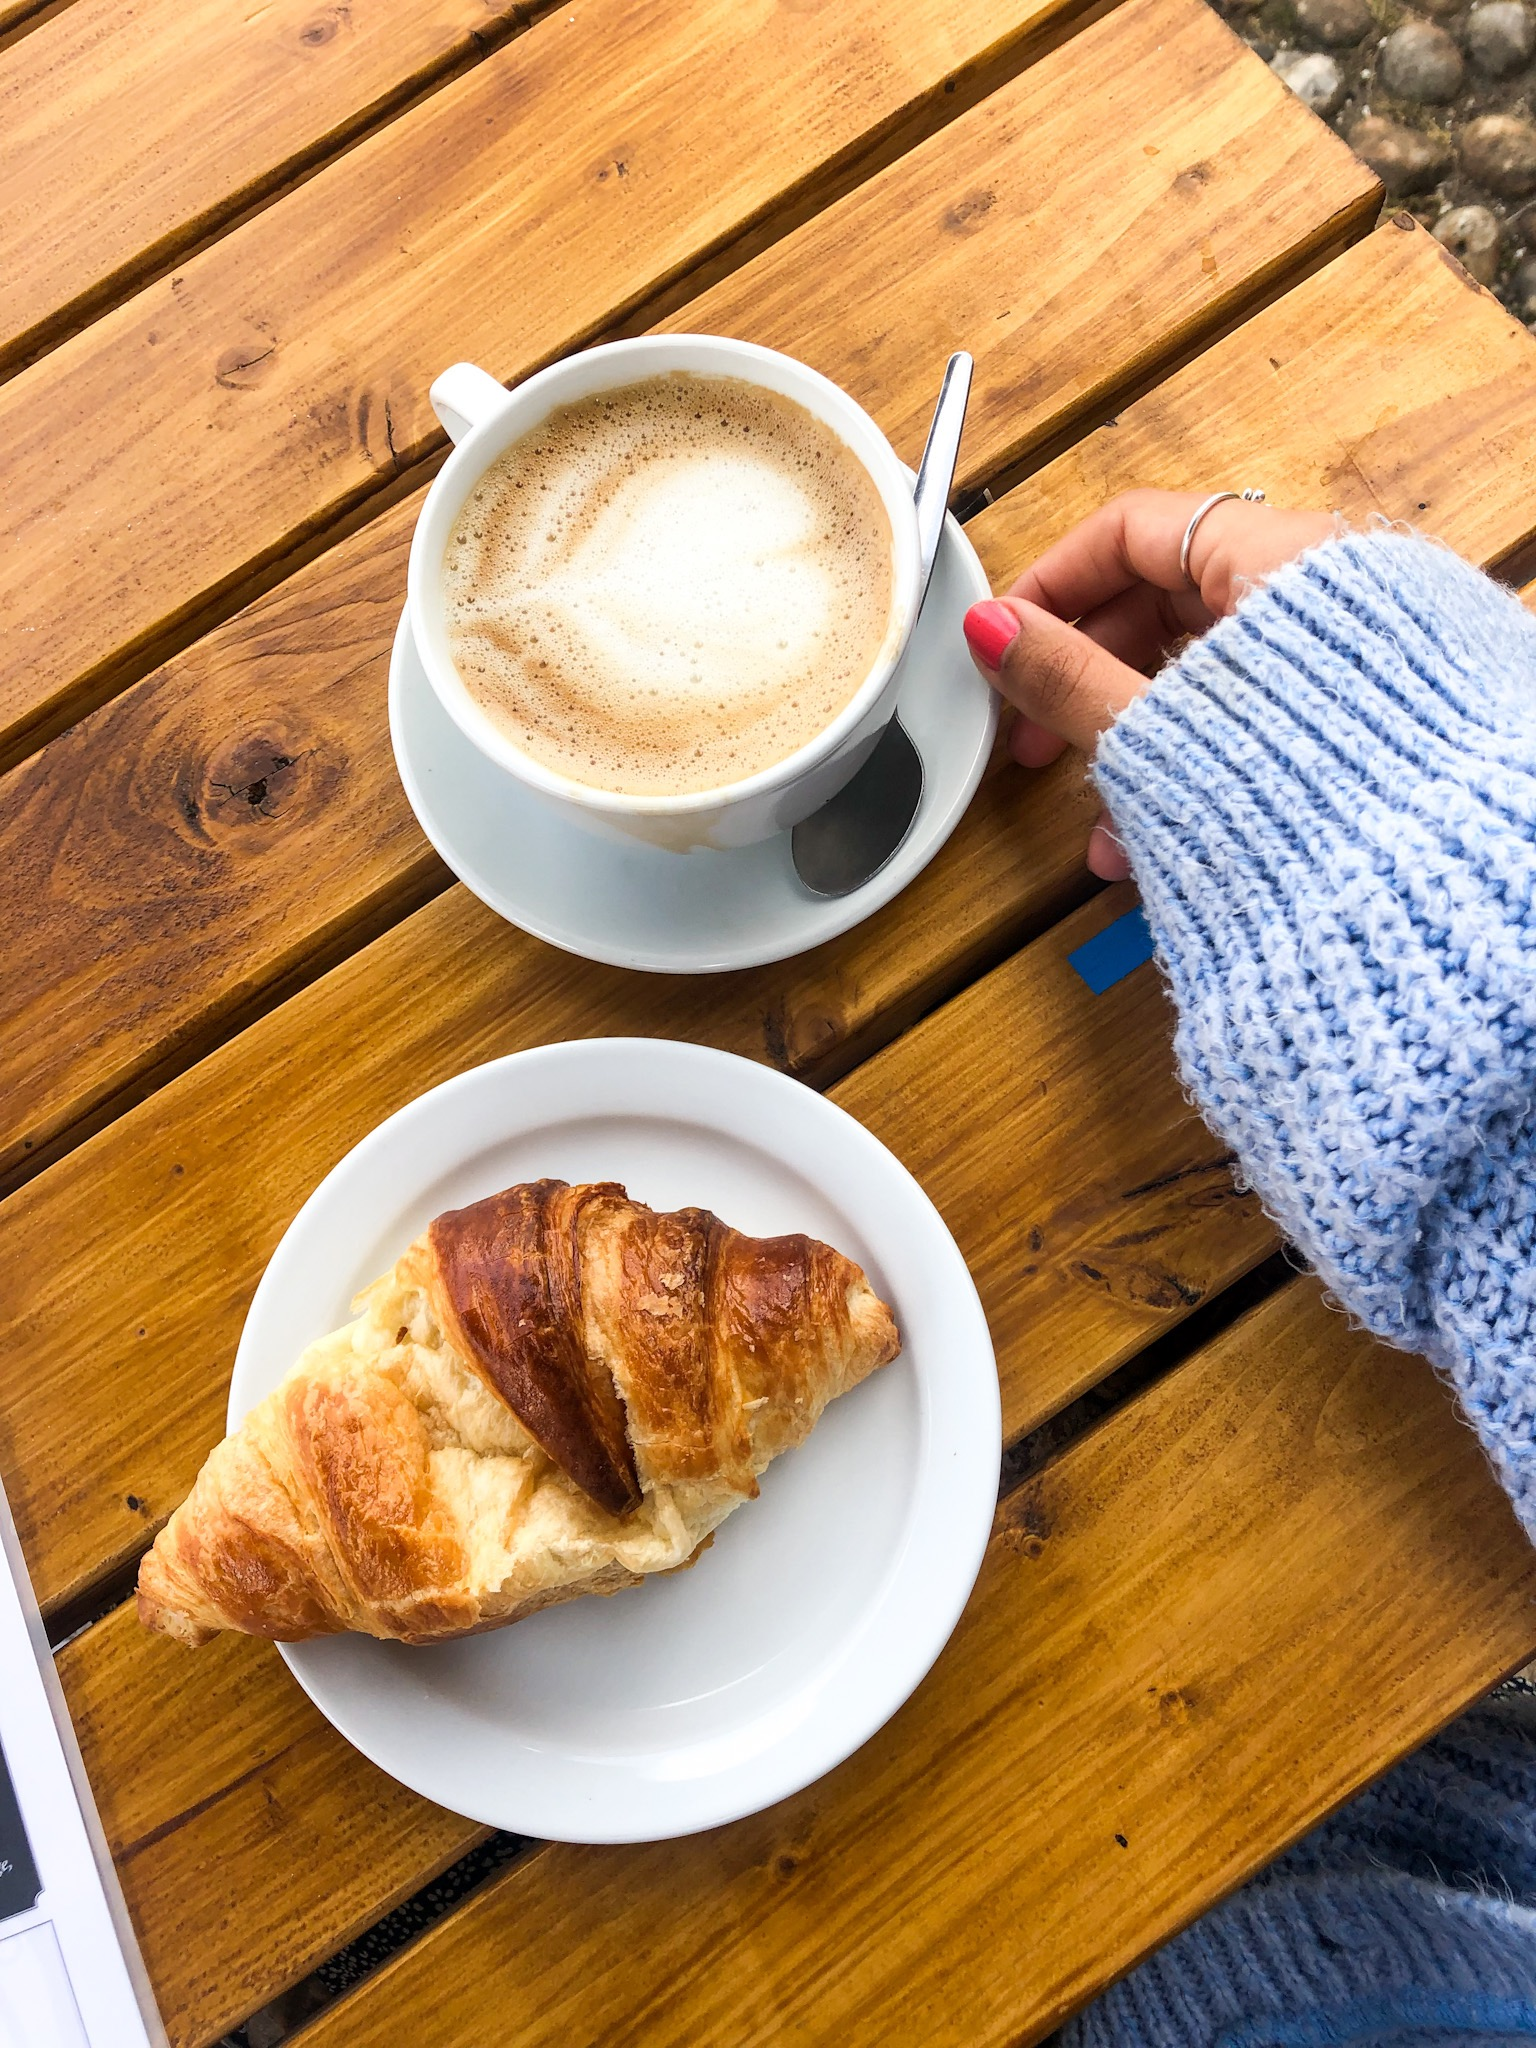 a hand is holding a coffee and croissant